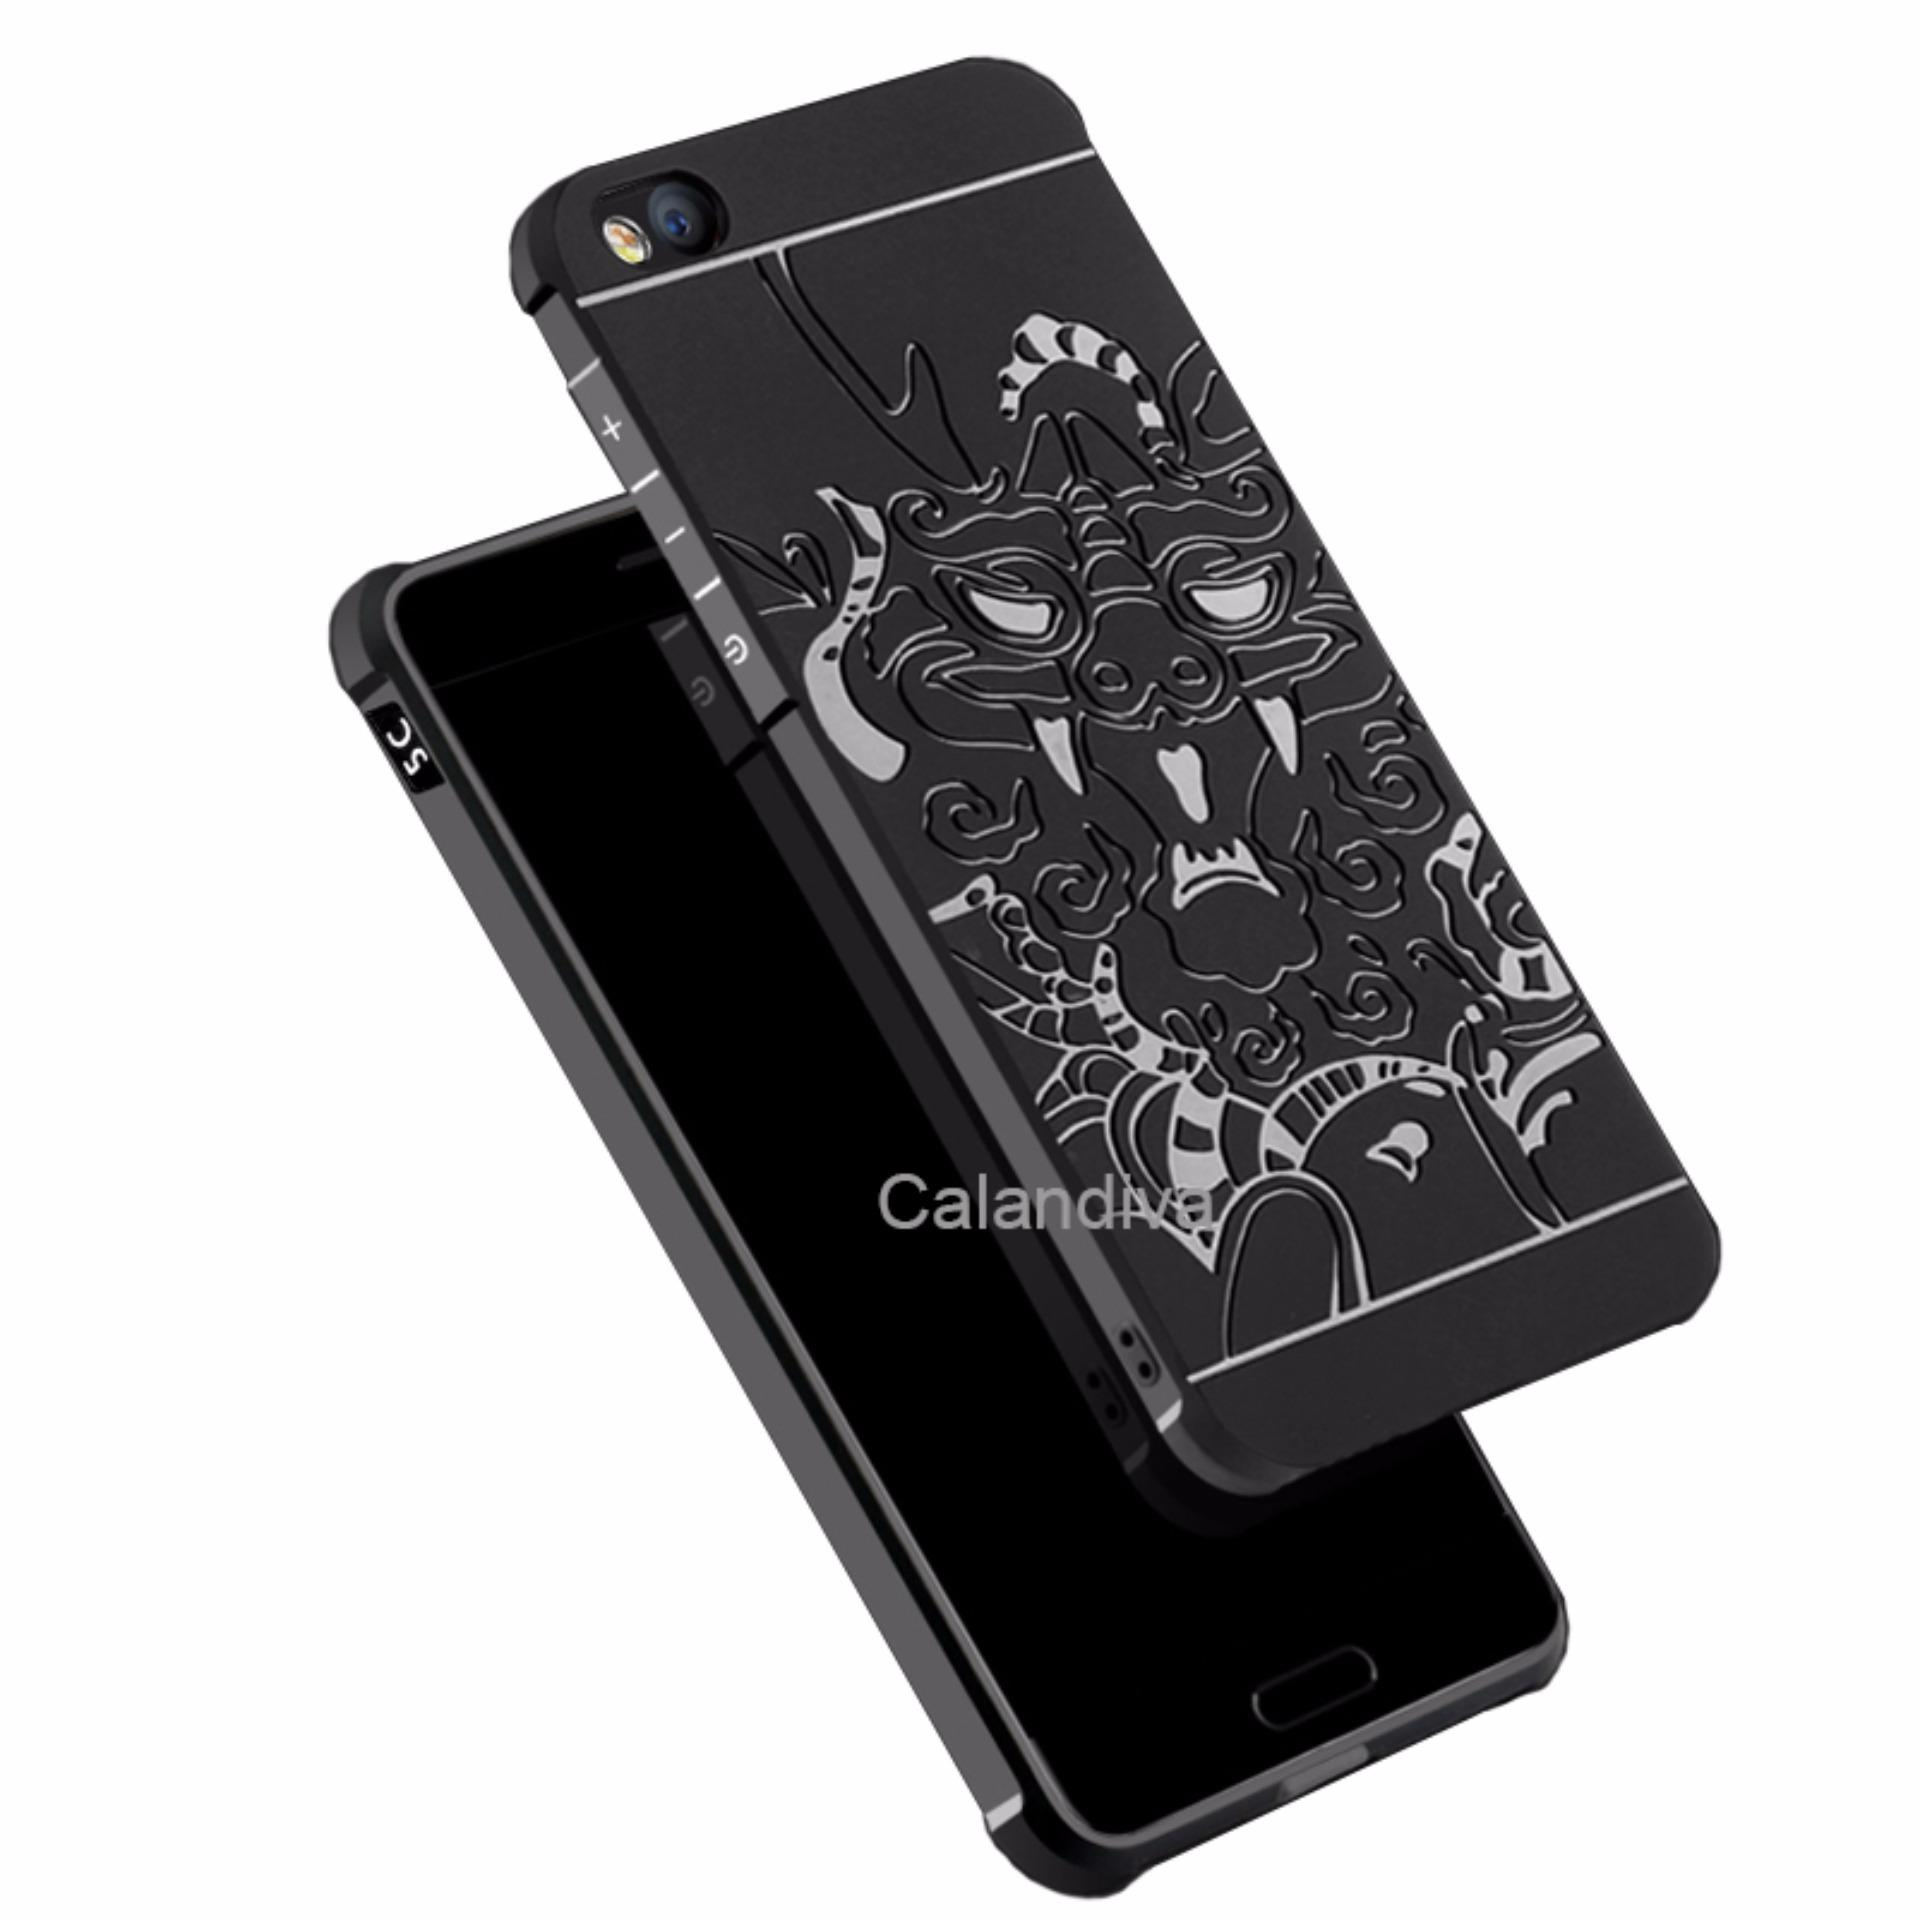 ... Calandiva Dragon Shockproof Hybrid Case for Xiaomi MI 5C Hitam Rounded